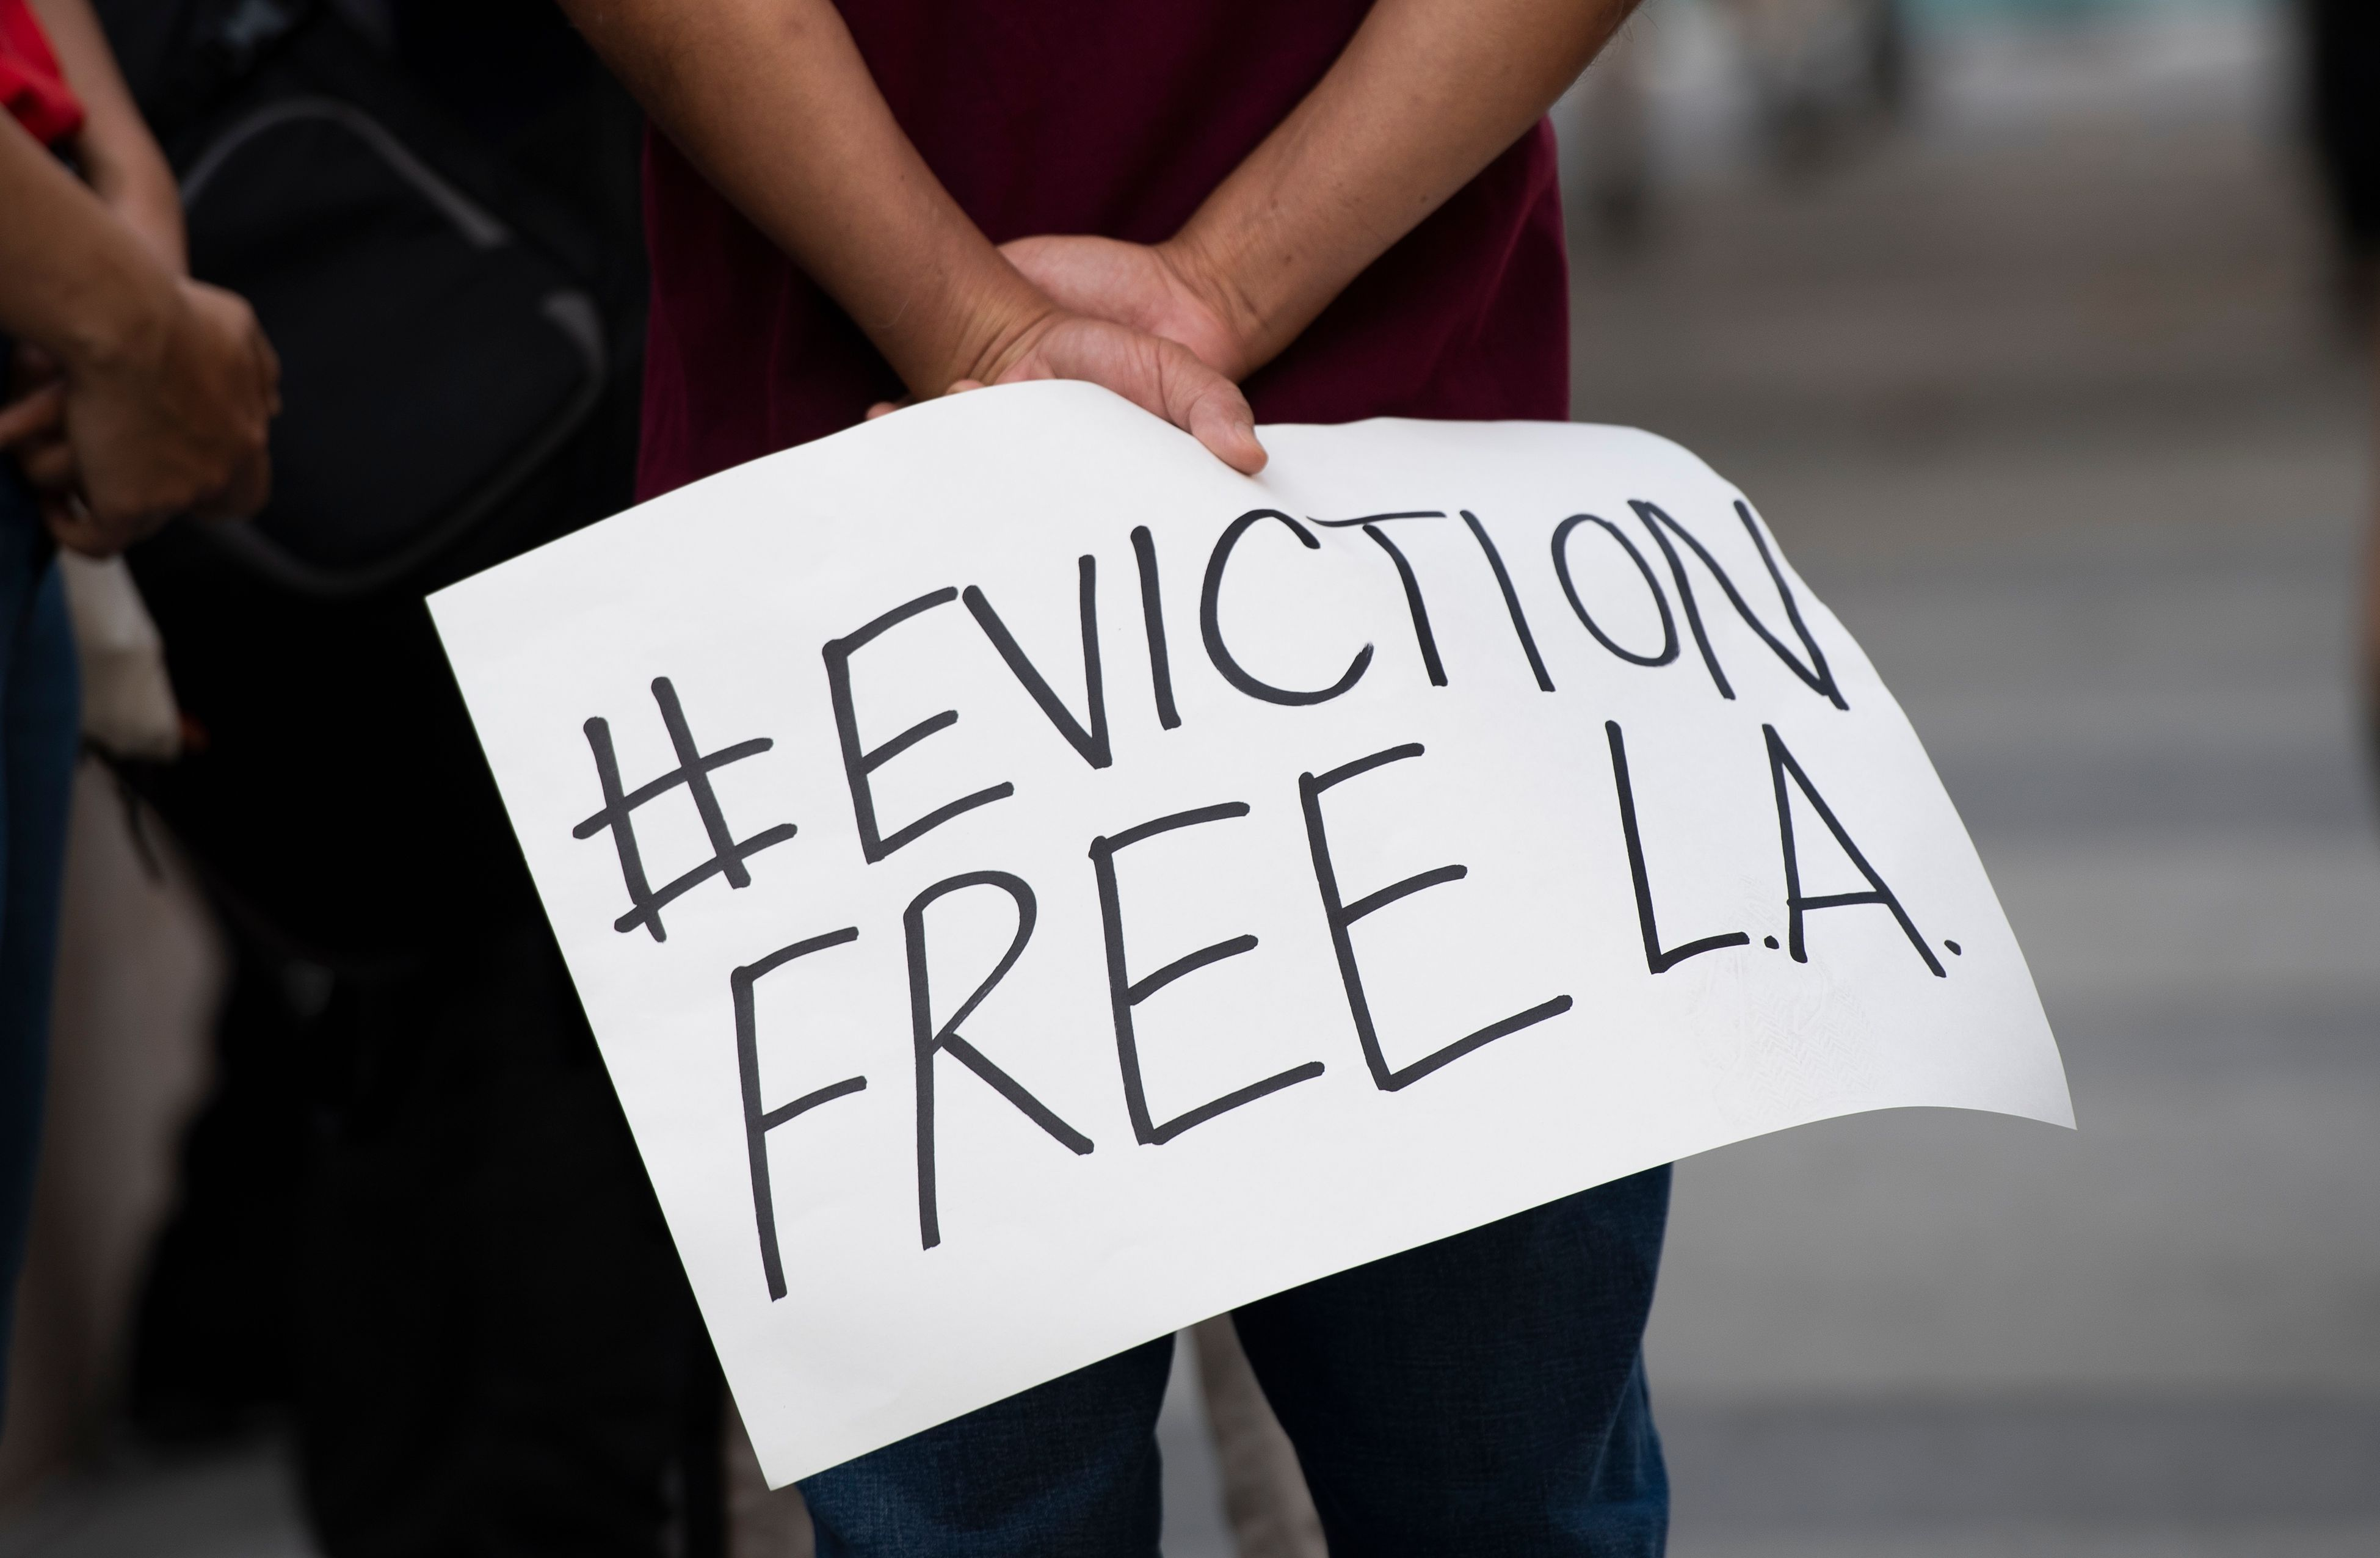 California's Eviction Rates Expected to Double in the Coming Months